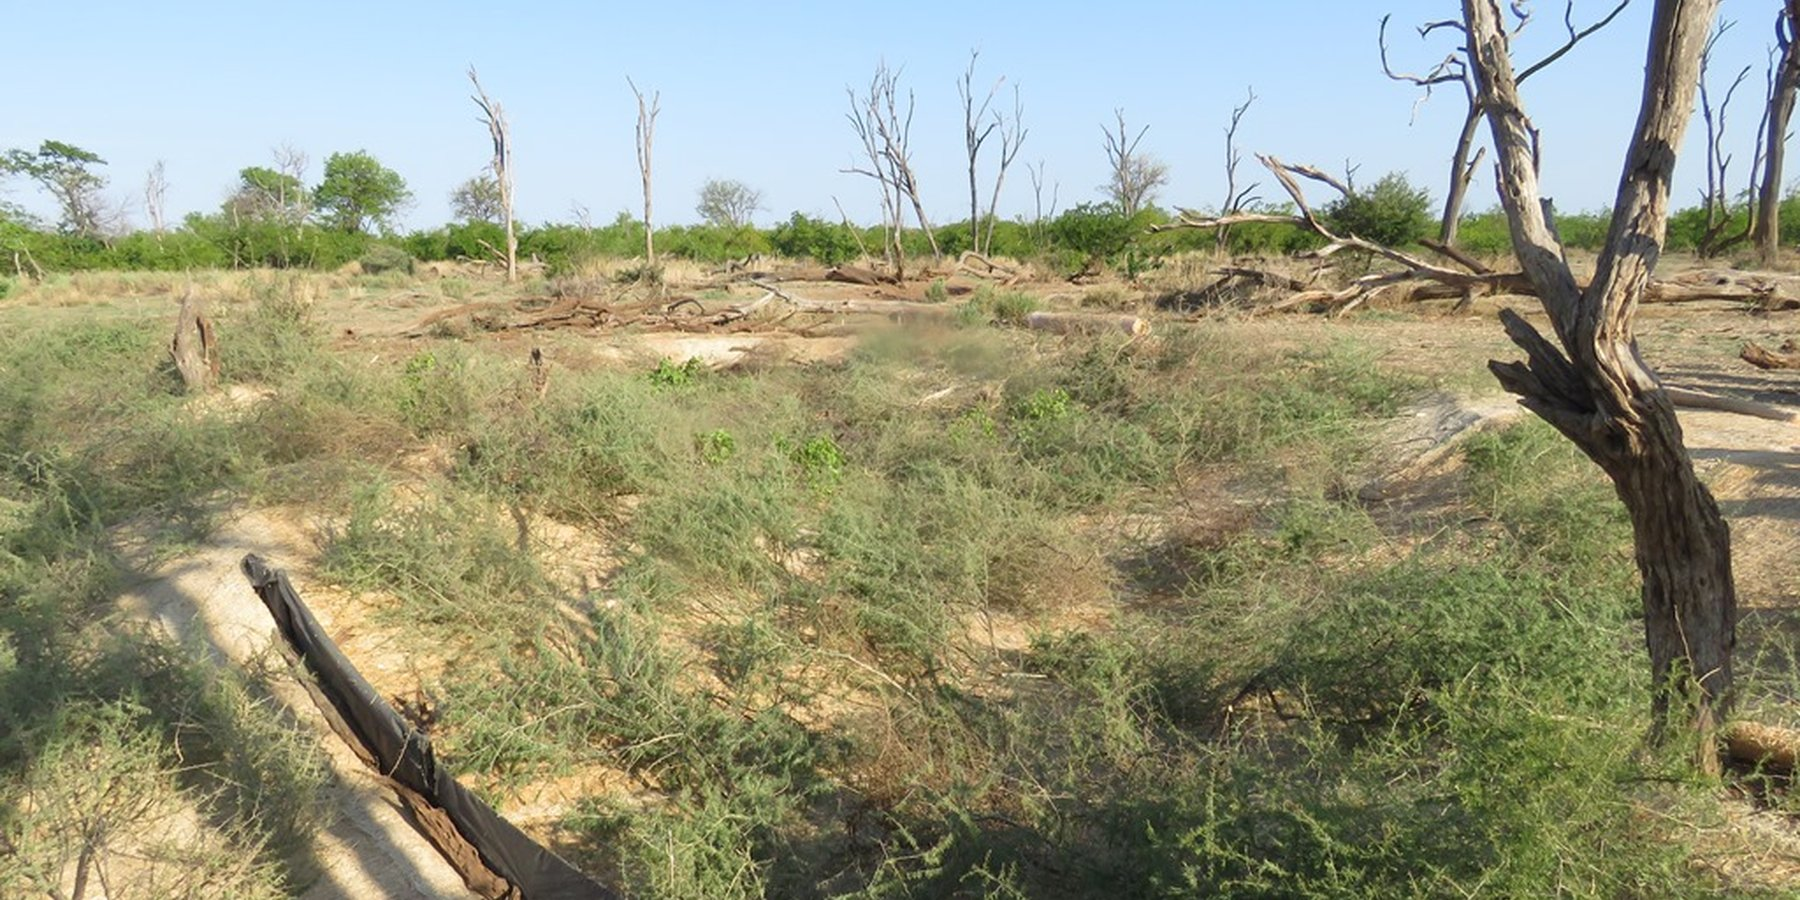 Rehabilitation of gully erosion in the Mapungubwe National Park in South Africa